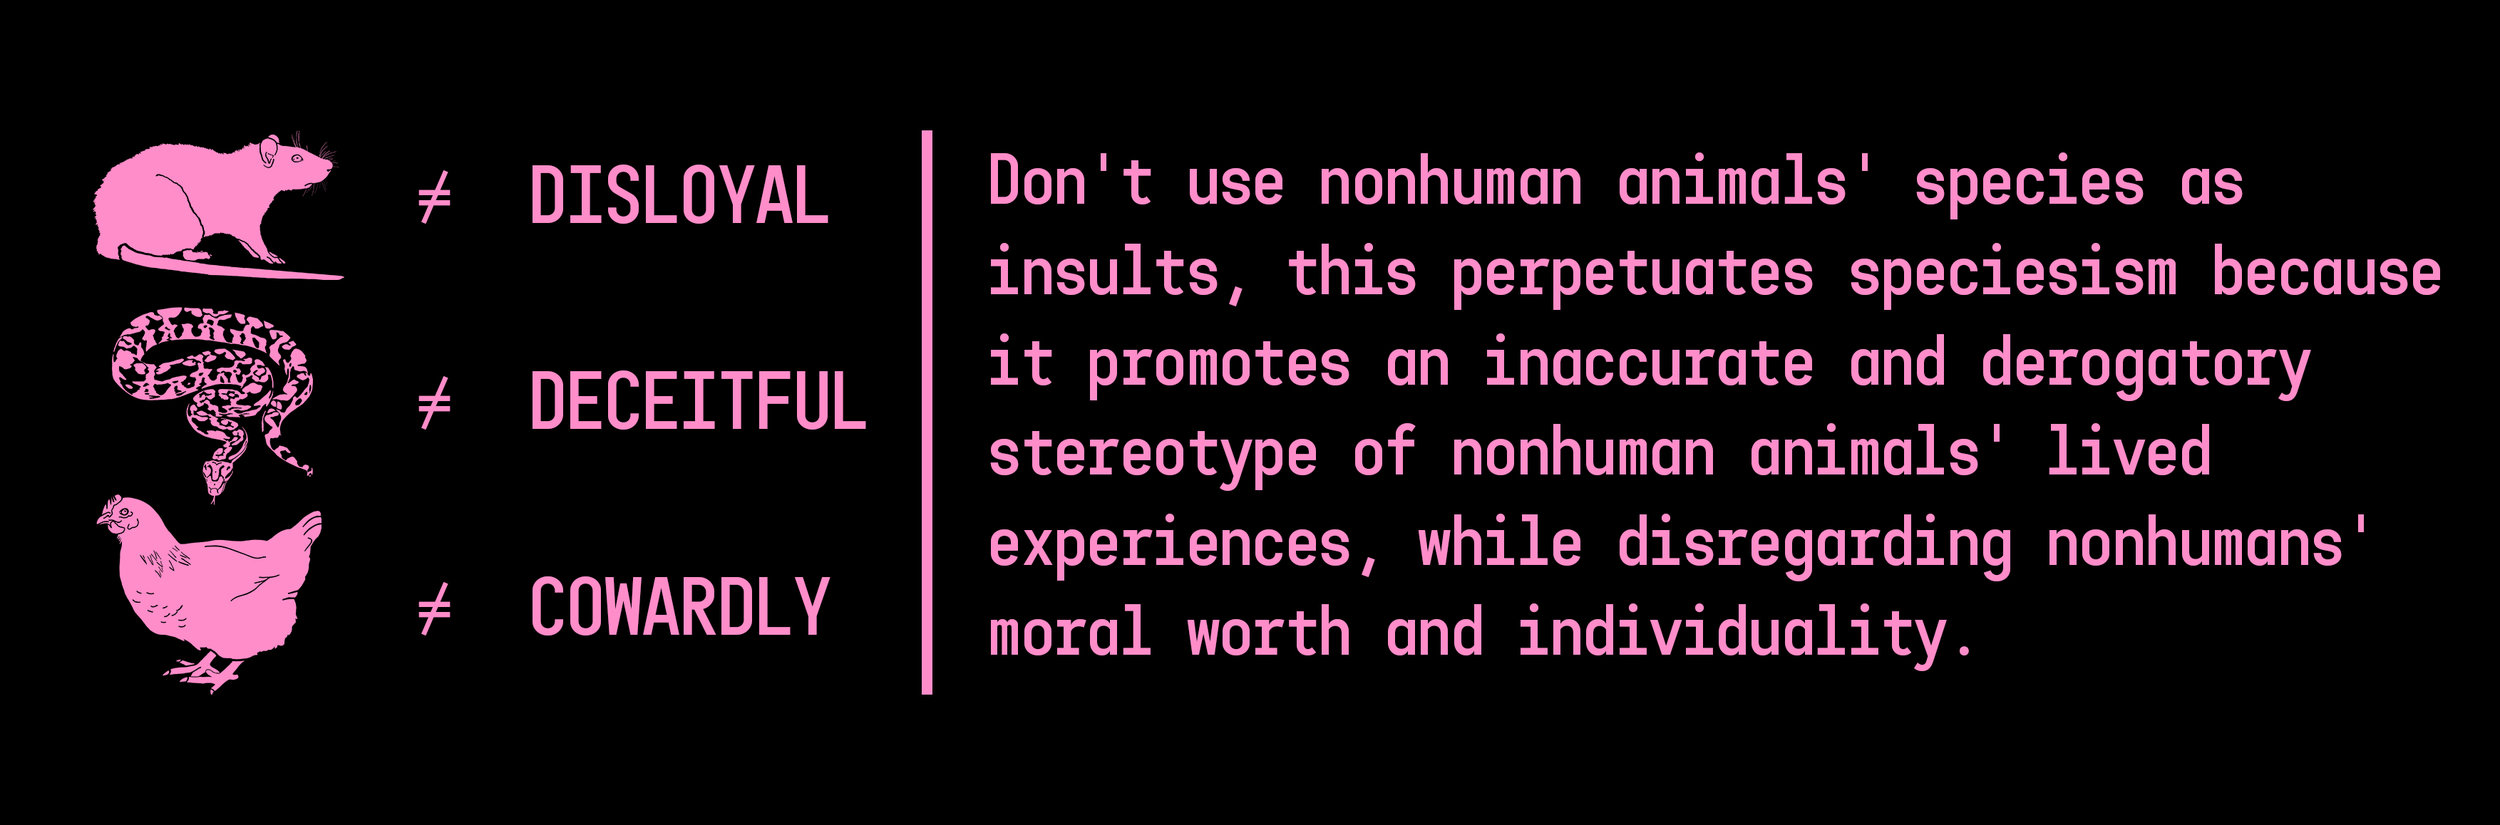 """Rat doesn't equal disloyal. Snake doesn't equal deceitful. Chicken doesn't equal cowardly. Pink text on black. """"Don't use nonhuman animals' species as insults, this perpetuates species because it promotes an inaccurate and derogatory stereotype of nonhuman animals' lived experiences, while disregarding nonhumans' moral worth and individuality."""""""